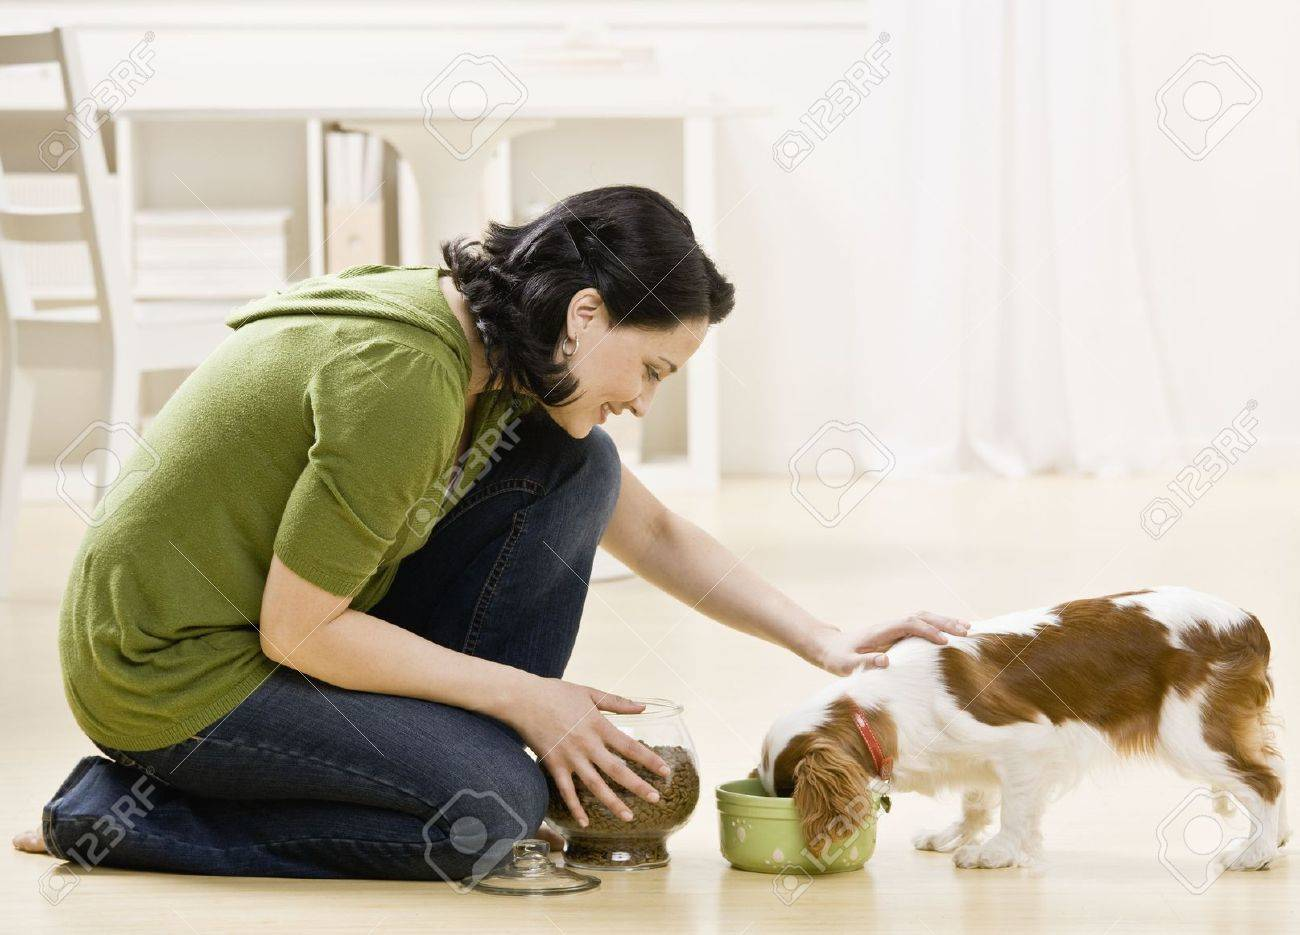 woman feeding and petting puppy